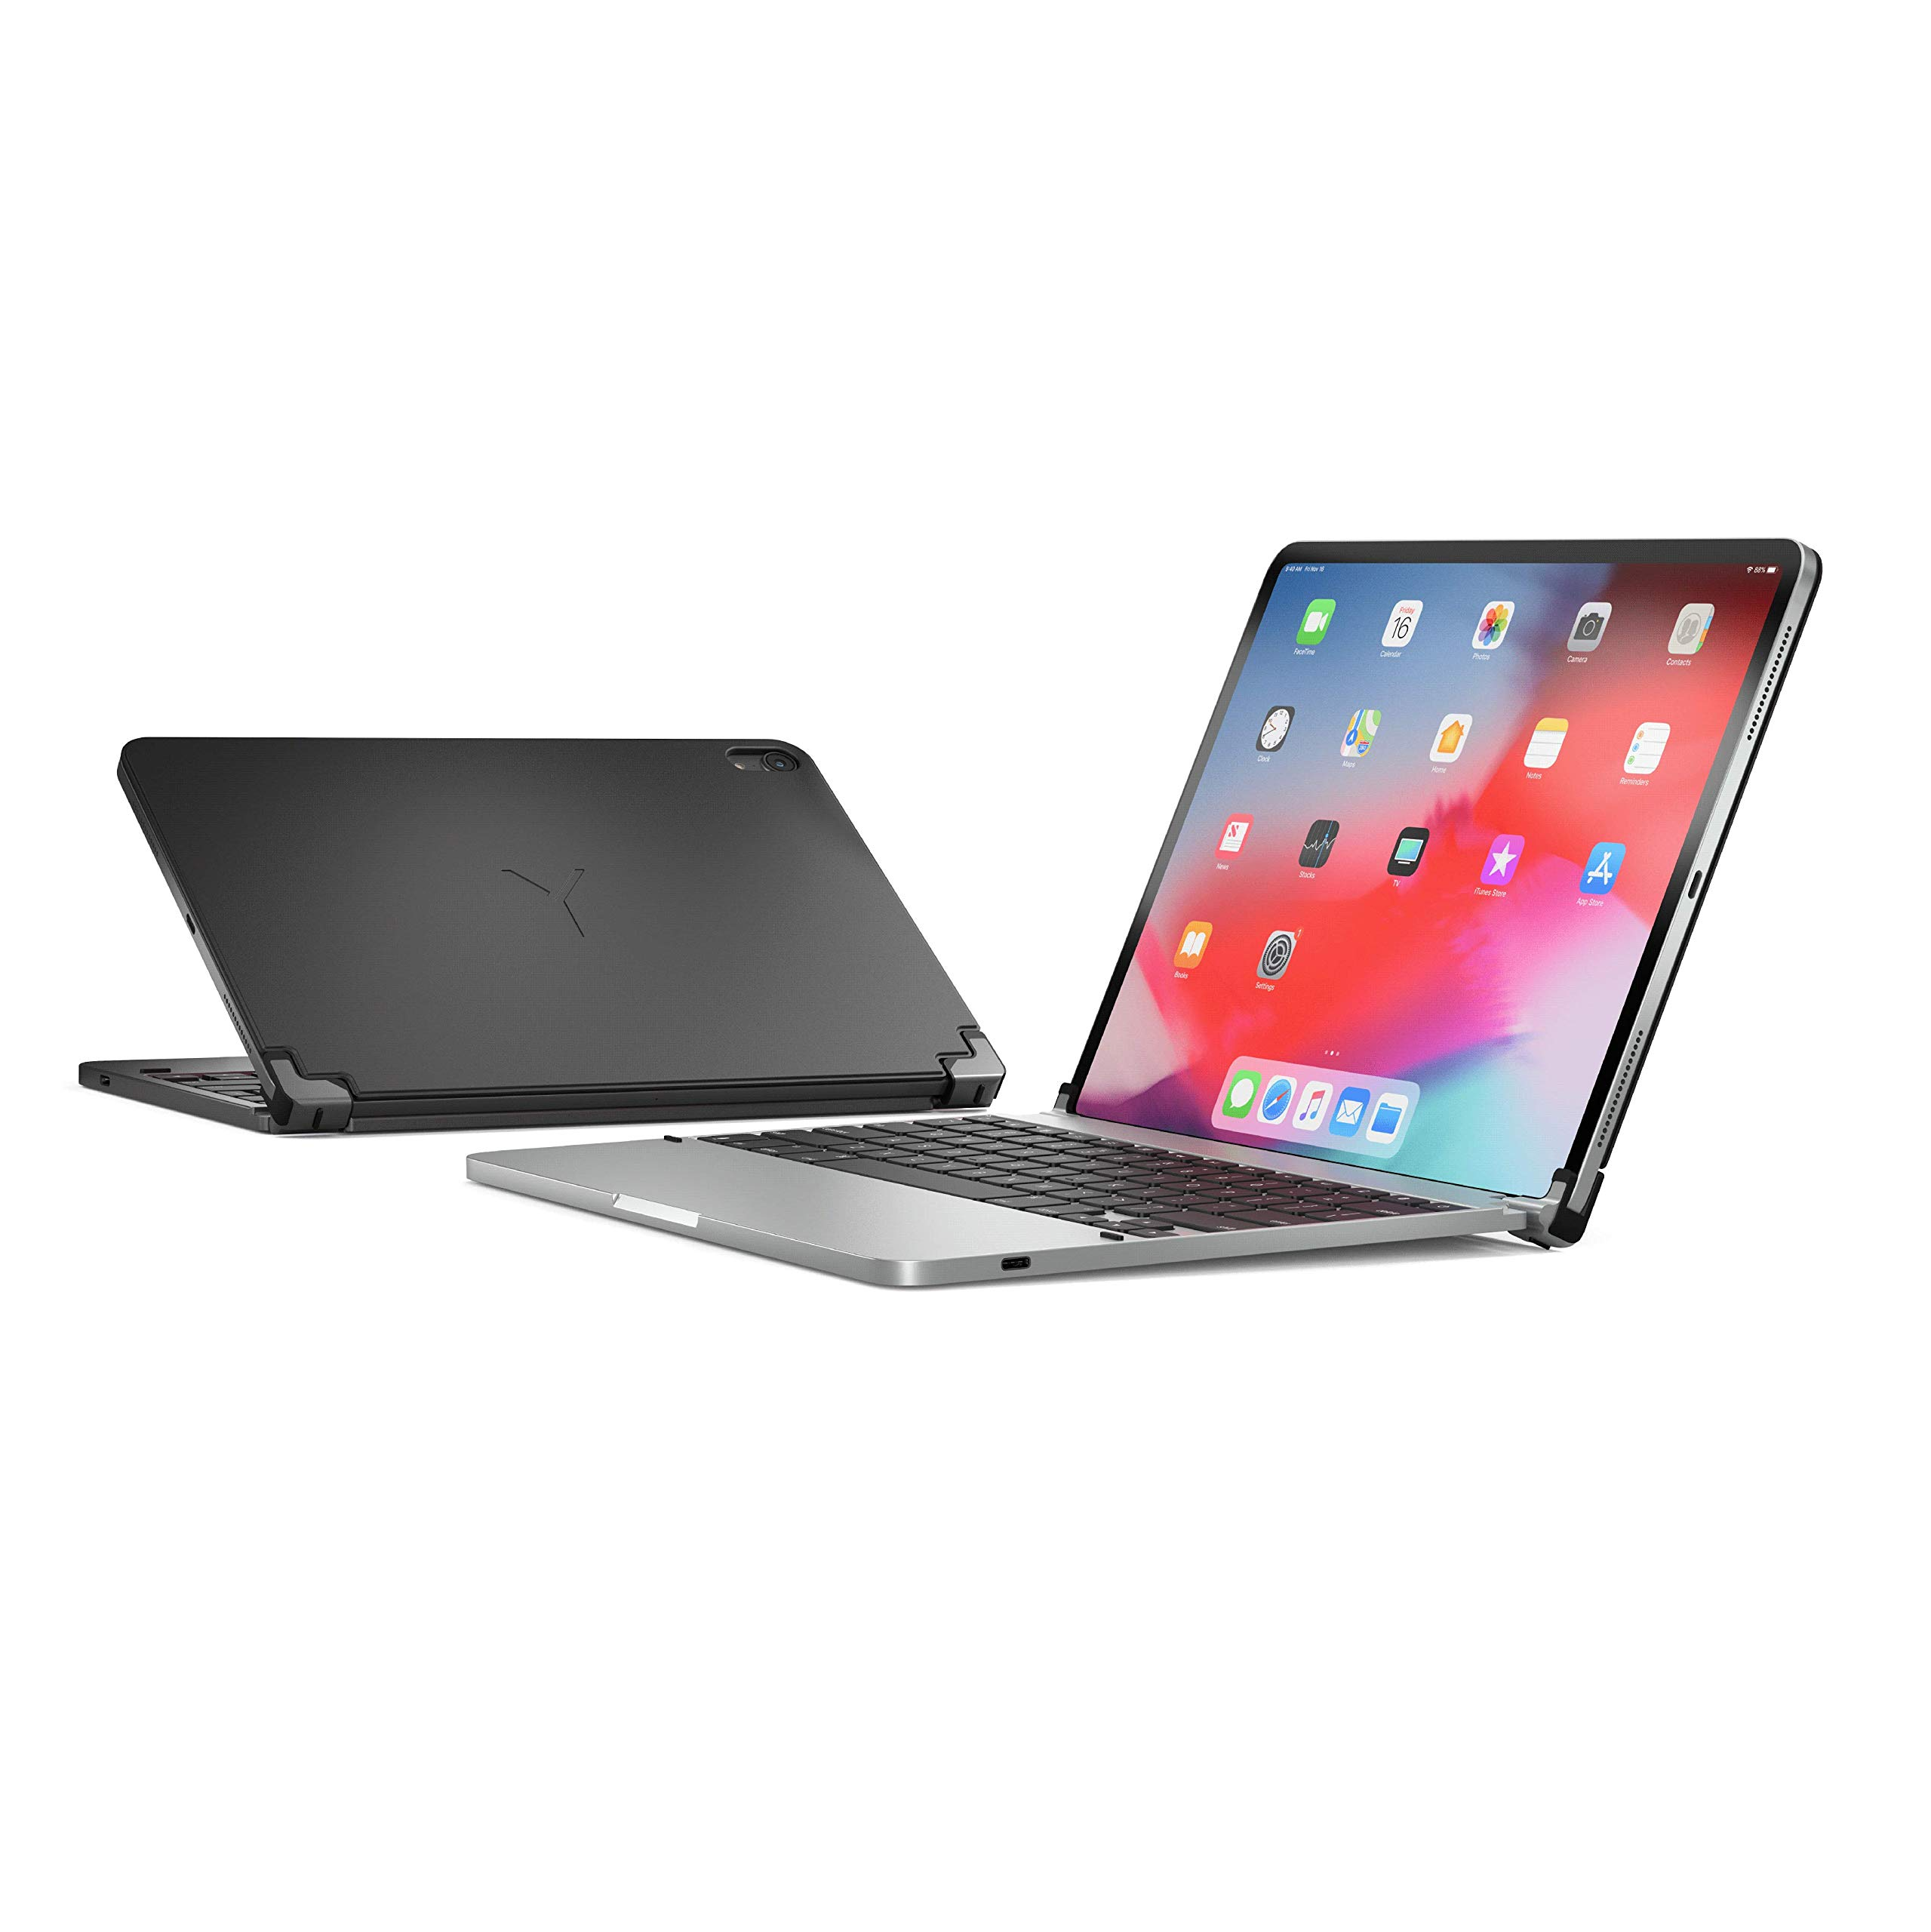 Brydge Pro 11.0 Keyboard for 11.0-inch iPad Pro 3rd Generation 2018 Model | Aluminum Wireless Bluetooth Keyboard with Backlit Keys | Long Battery Life | (Space Gray) by Brydge (Image #6)